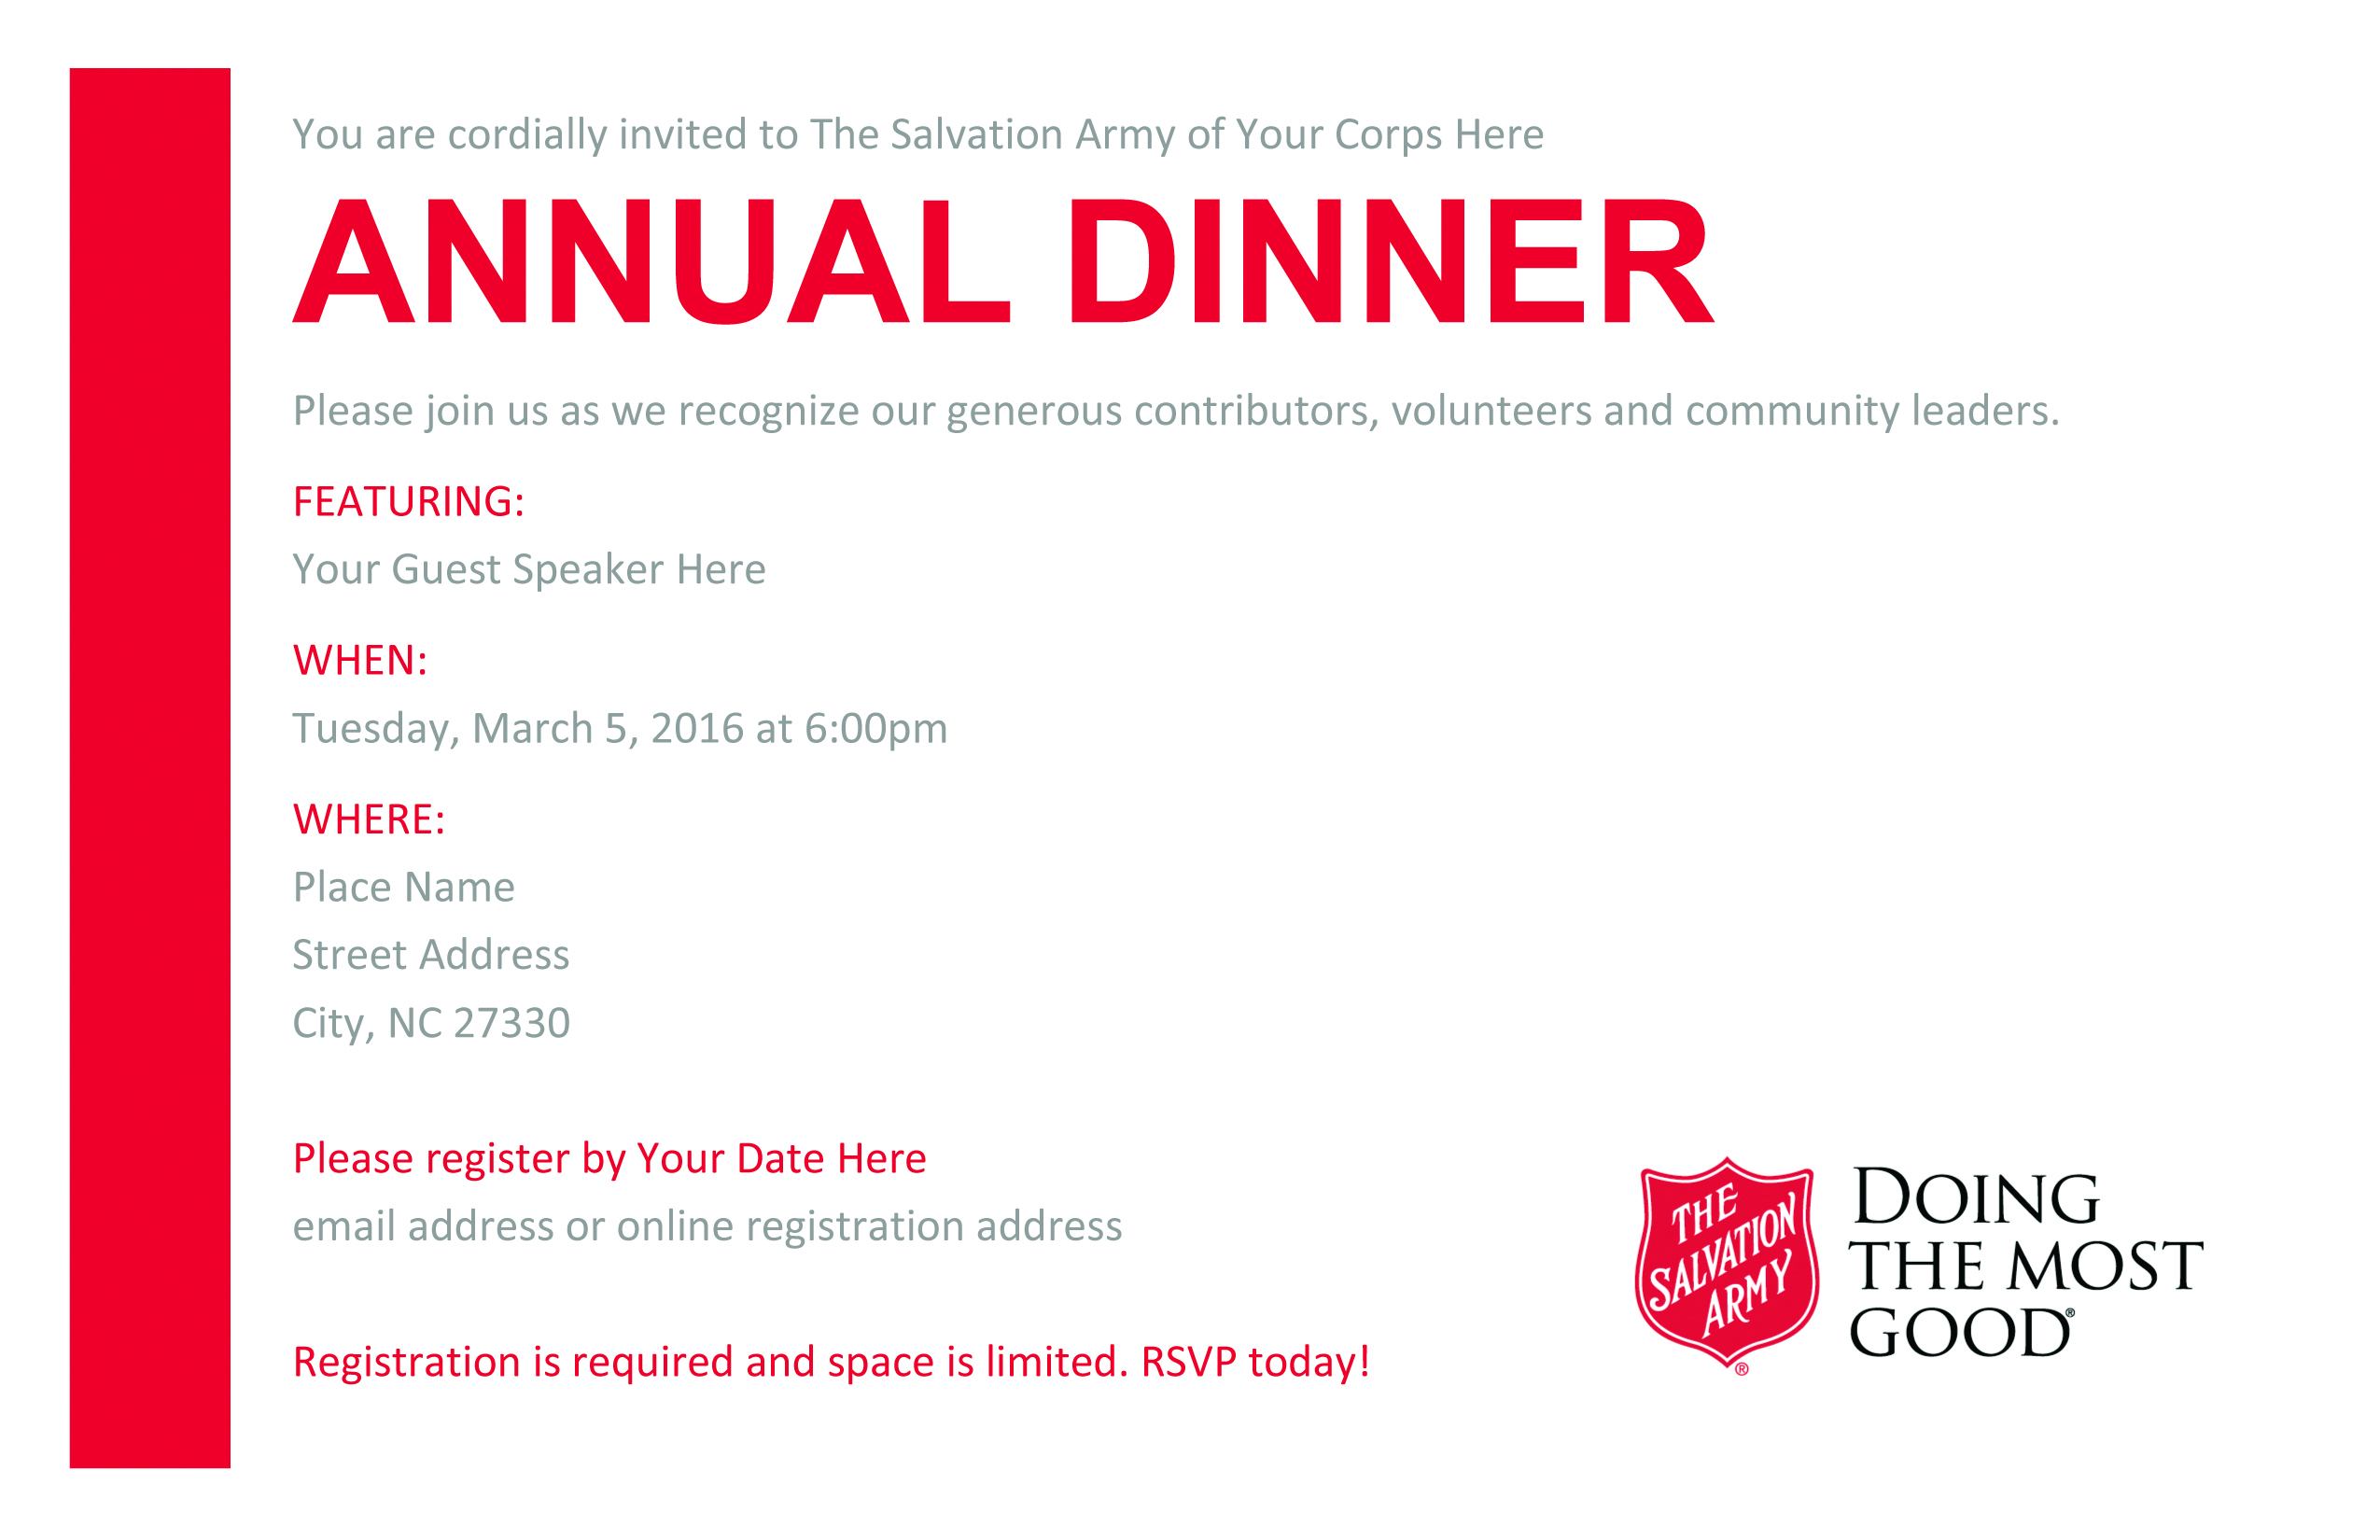 Annual Dinner Resources The Salvation Army – Annual Dinner Invitation Card